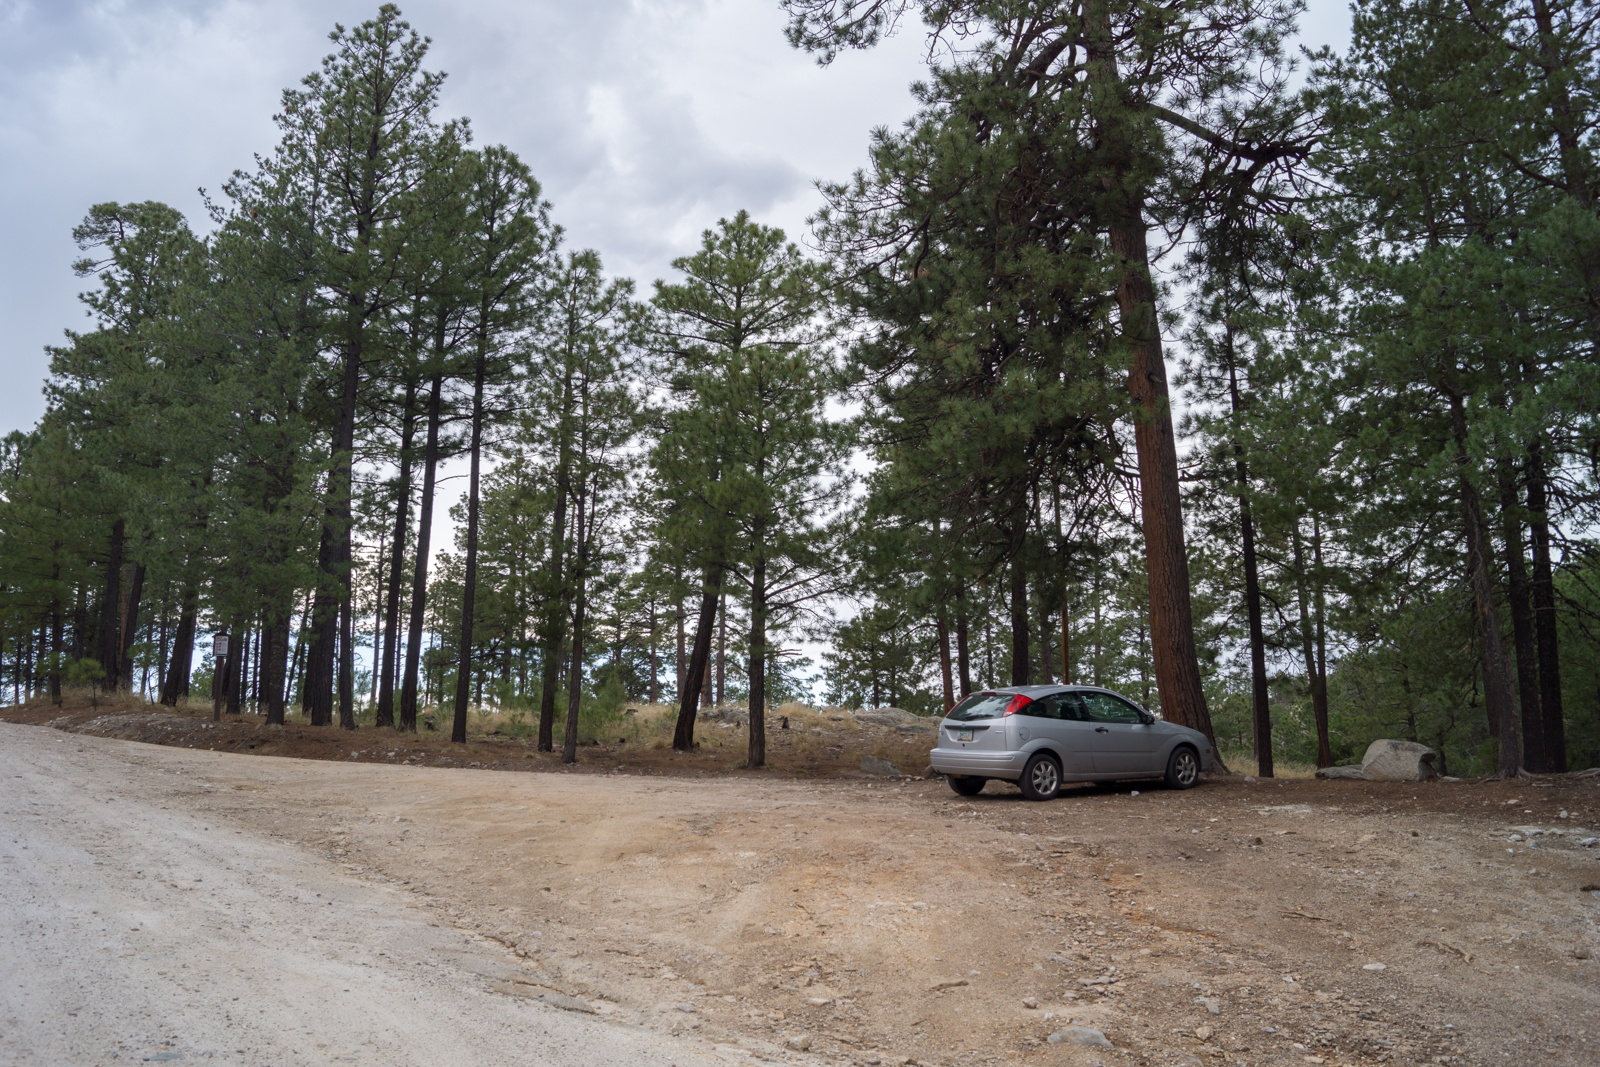 A cloudy day at the Palisade Trailhead. July 2014.